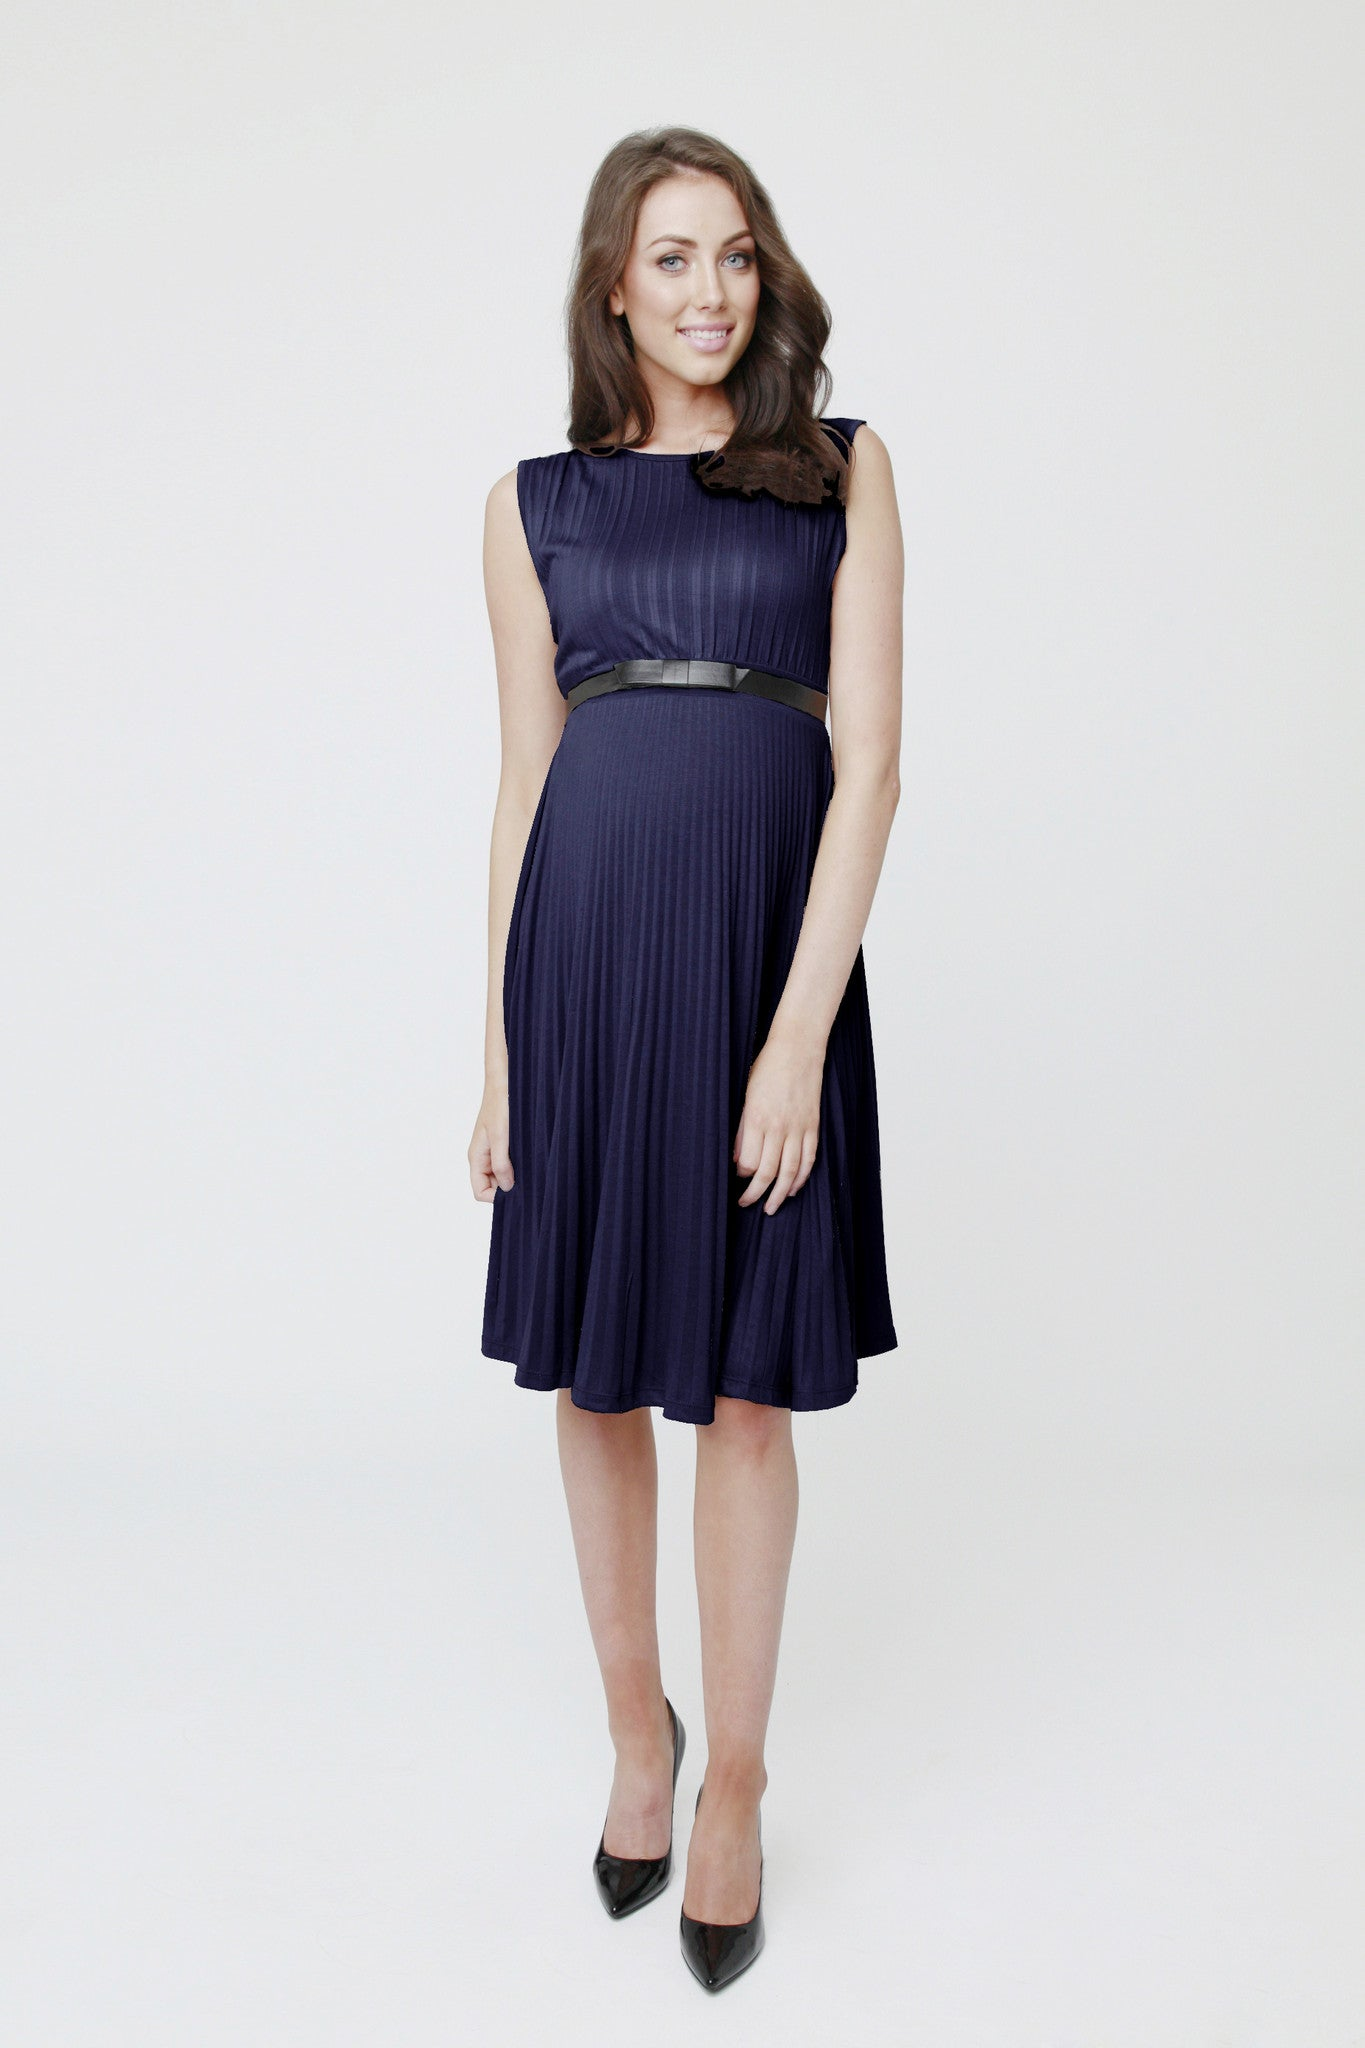 Knife Pleat Dress [it] Abito elegante premaman